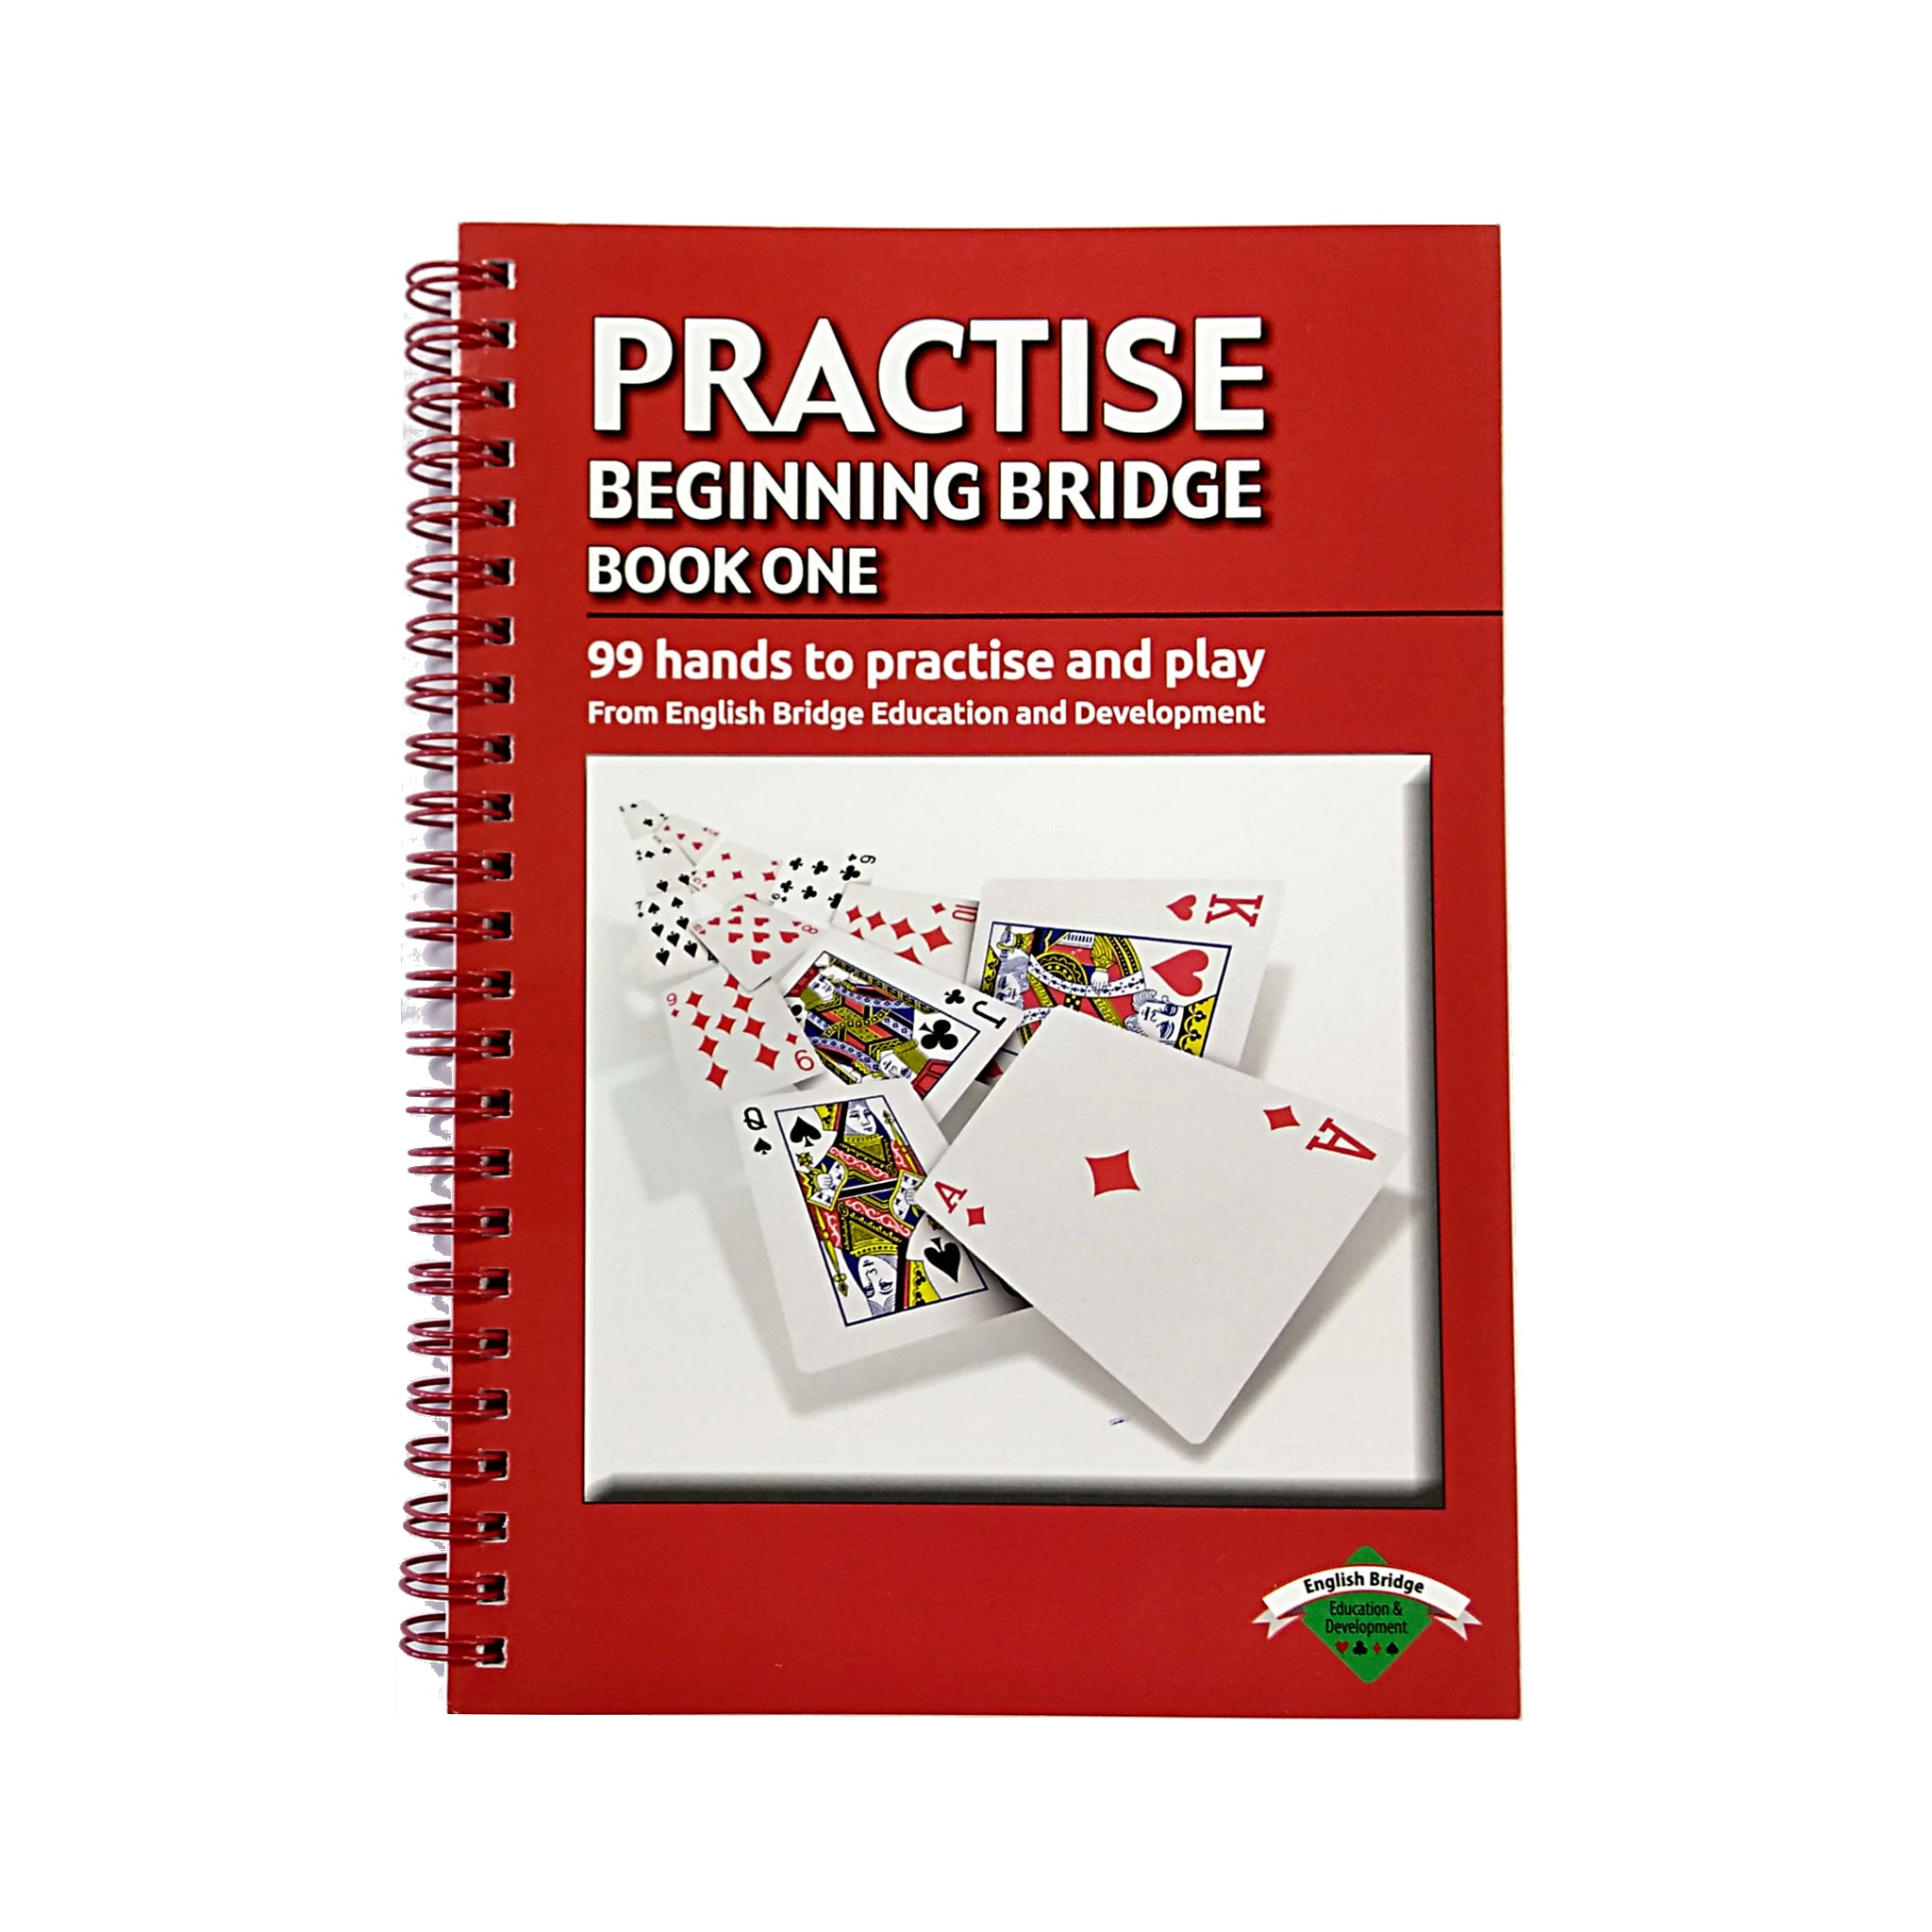 Practise - Beginning Bridge (A5 size) - OFFER